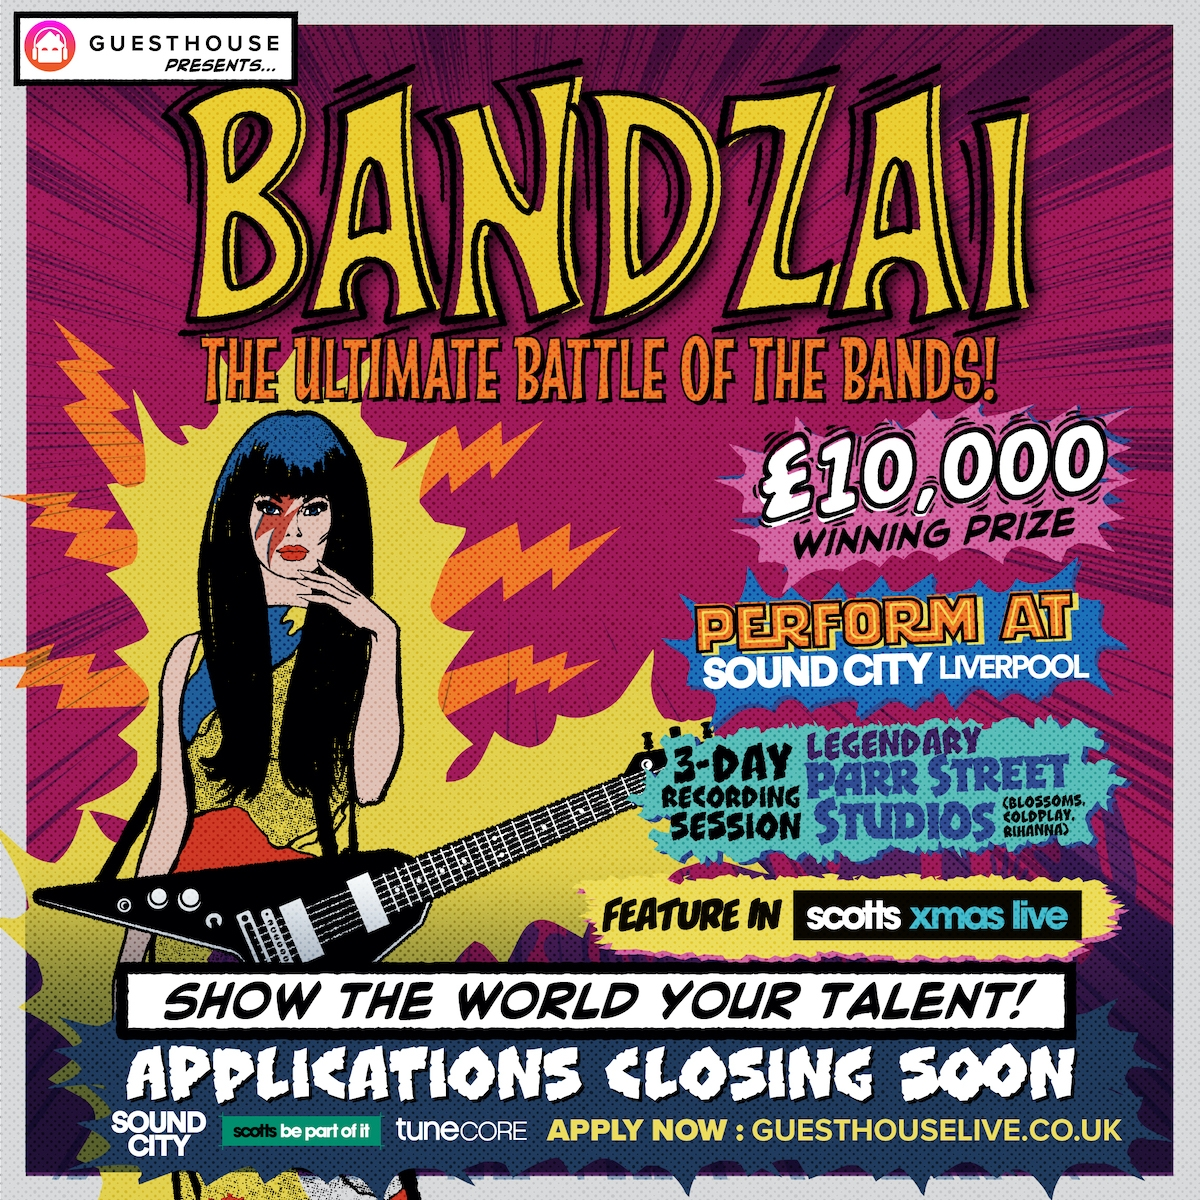 Sound City partners with scotts Menswear for Bandzai for Bandzai! The Ultimate Battle Of The Bands